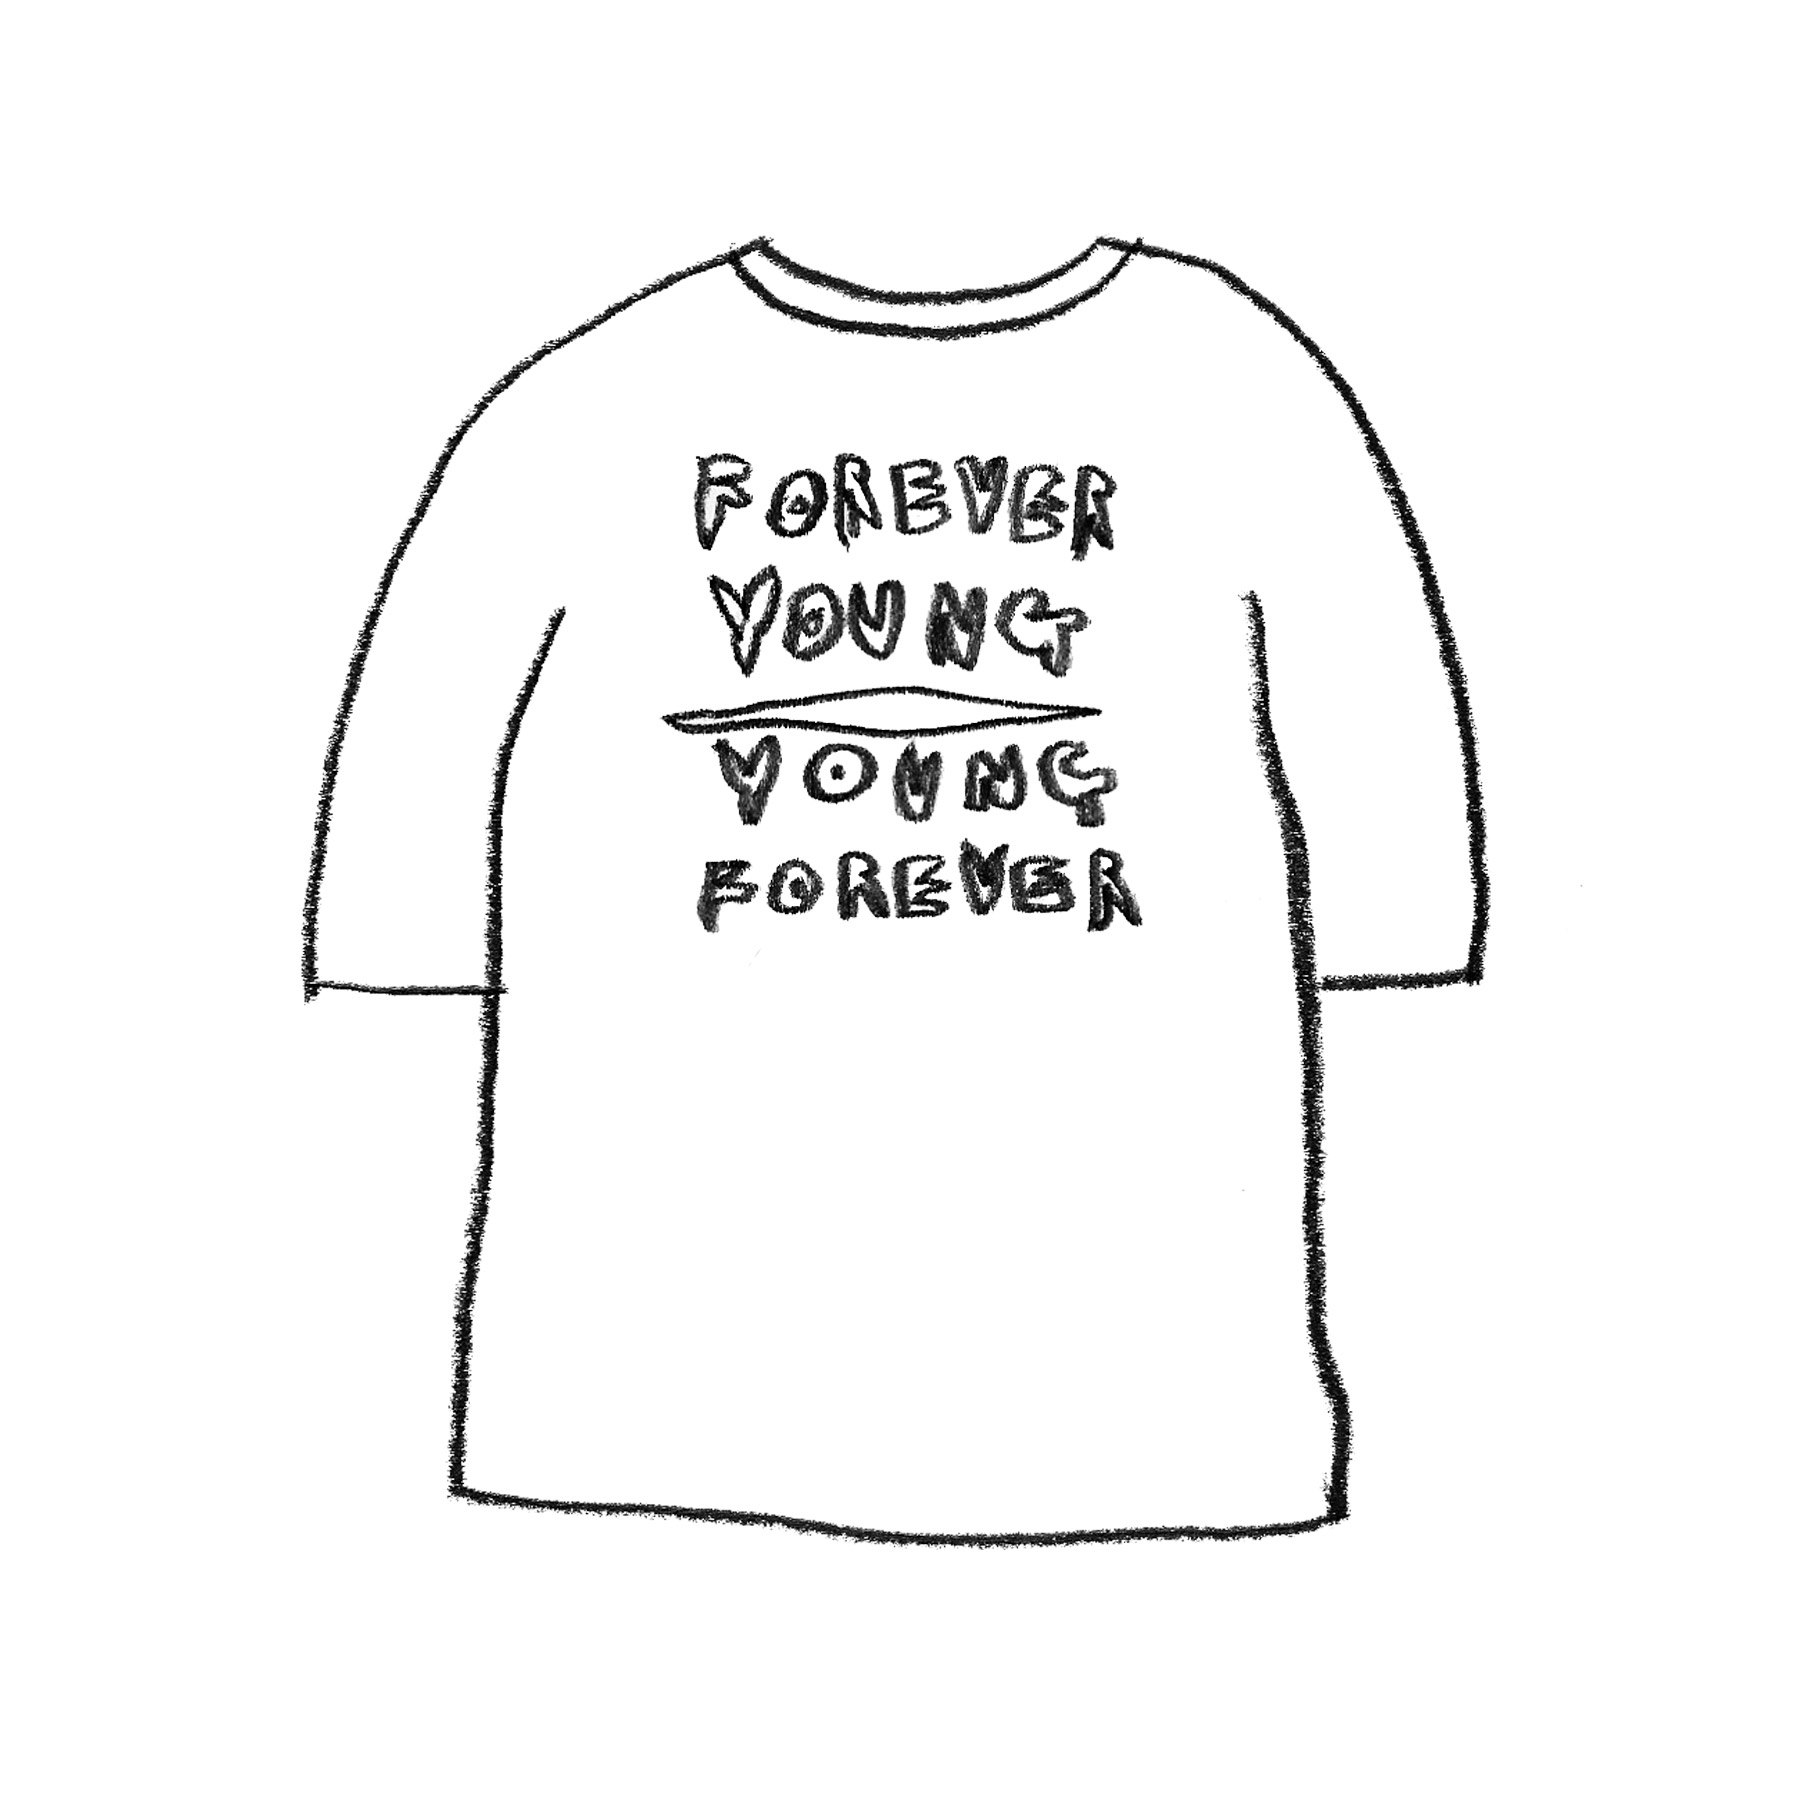 FOREVER YOUNG 1/2 T-SHIRT